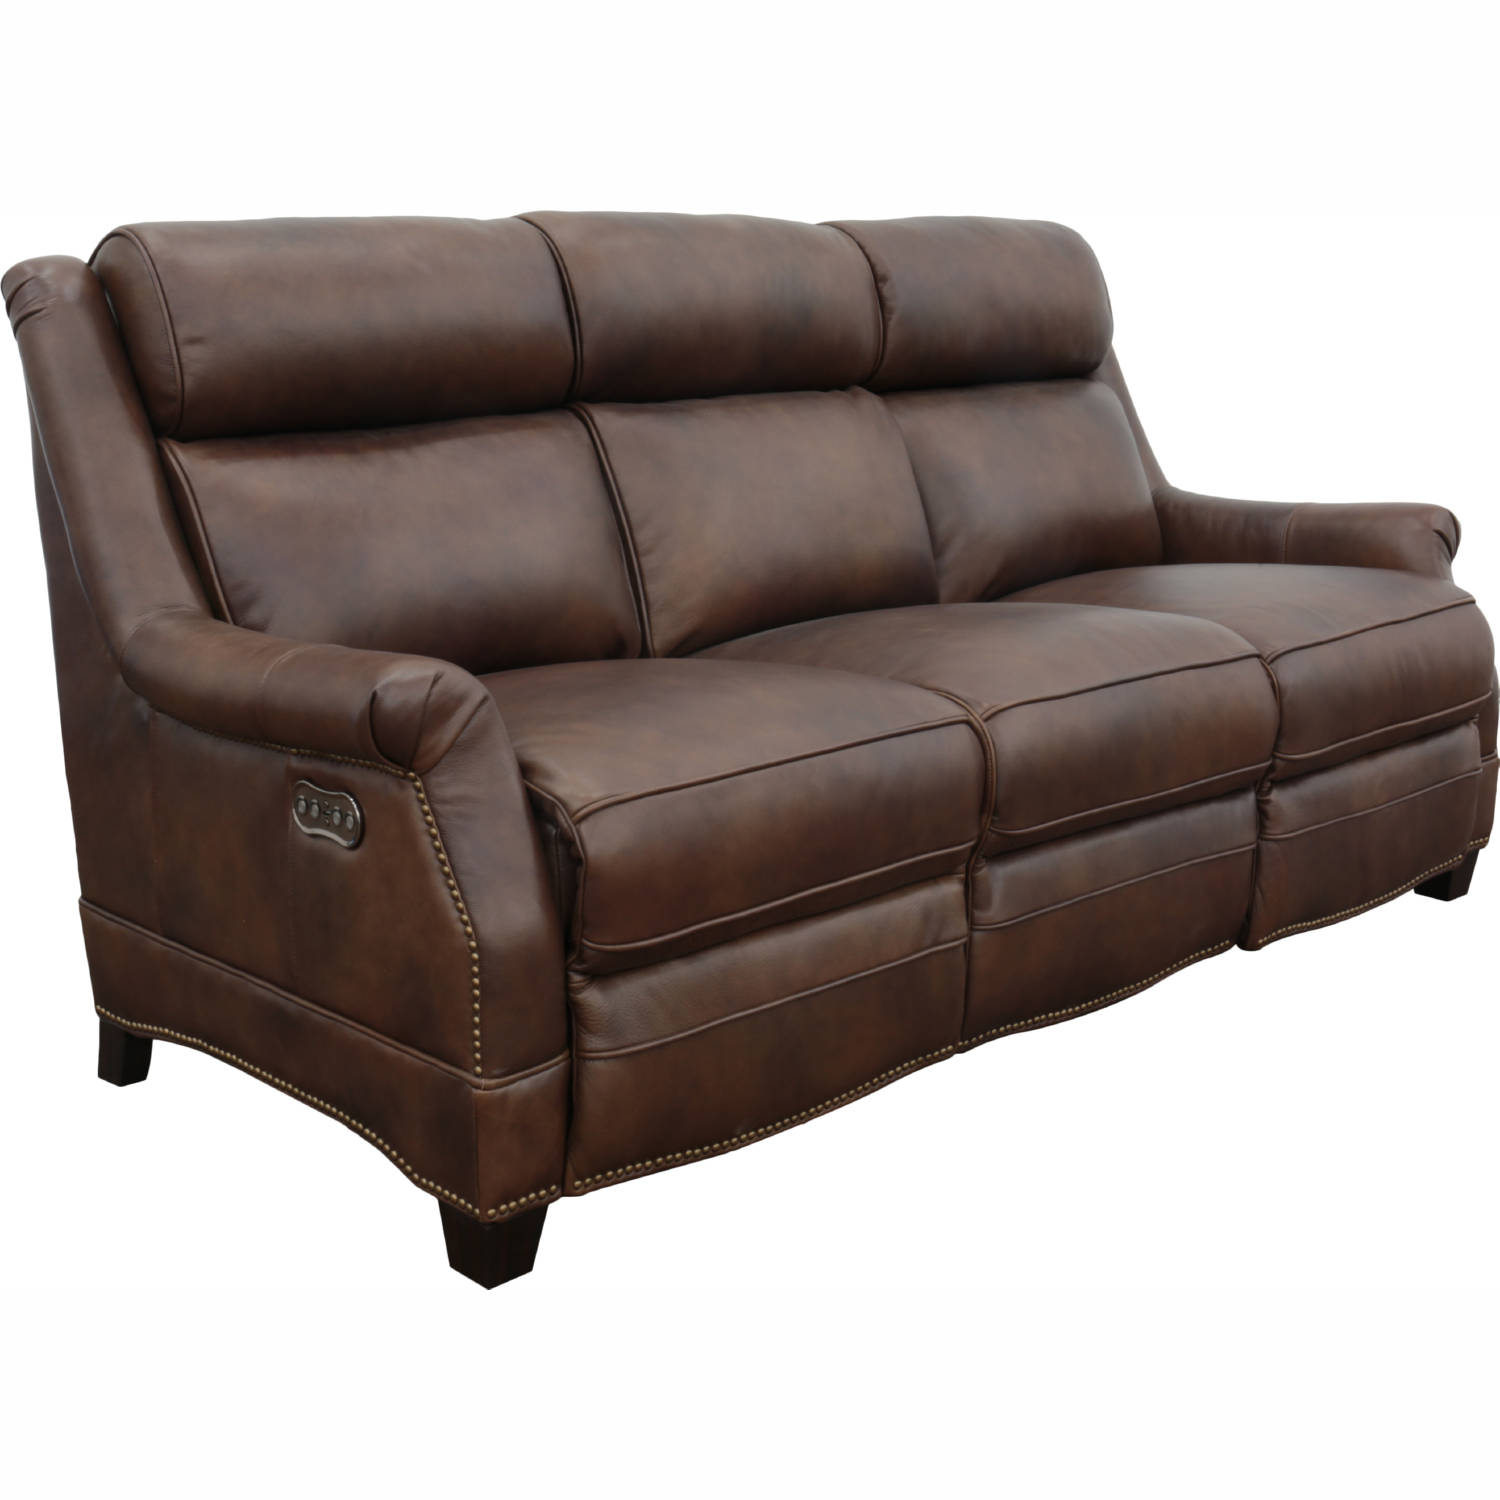 Warrendale Power Reclining Sofa In Cognac Brown Leather By Barcalounger